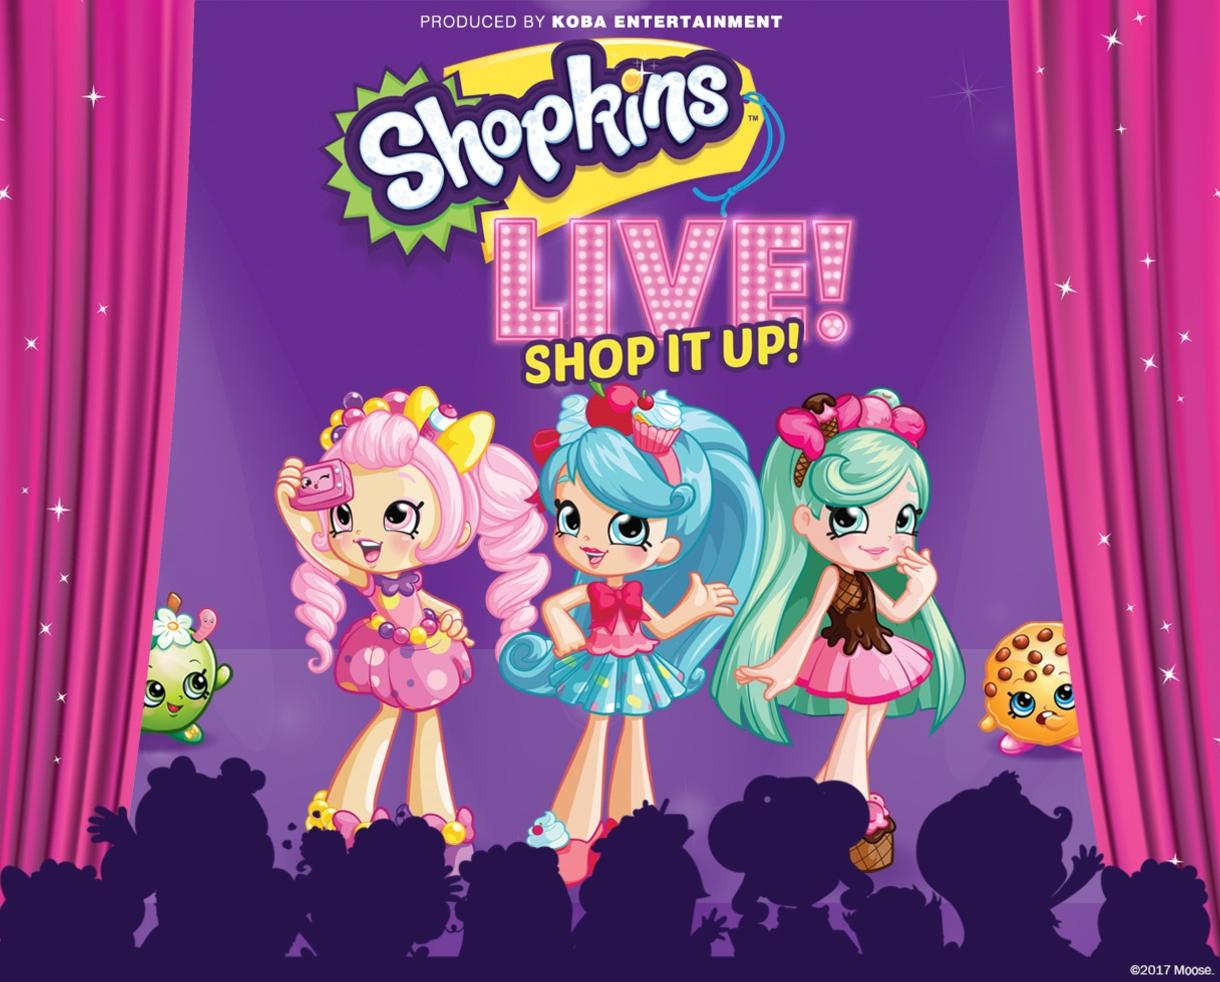 Save 30% off Tickets to Shopkins Live! Shop It Up! November 12th at Paramount Theatre - Oakland